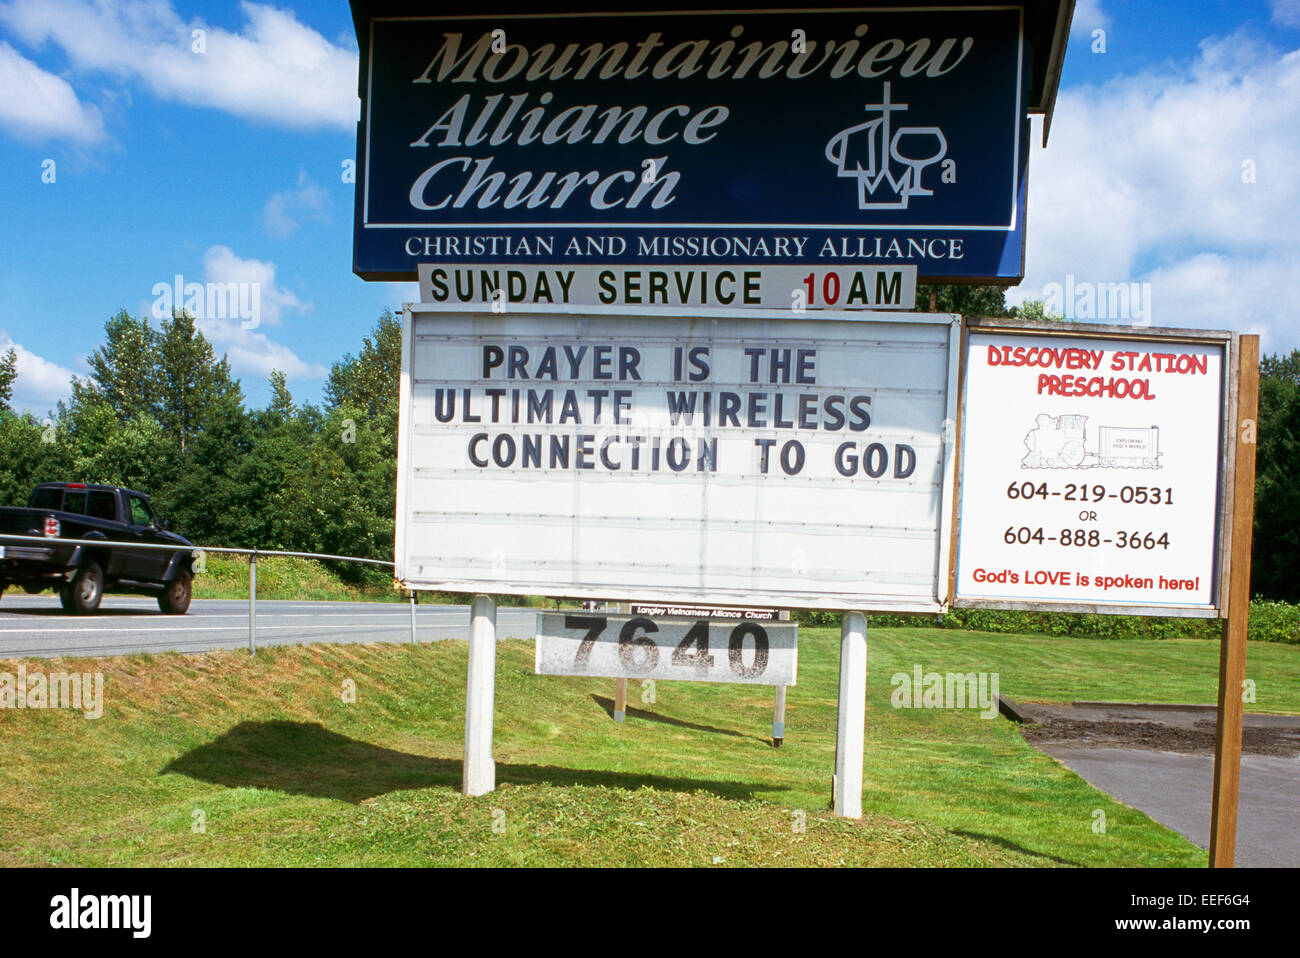 Funny Humorous / Humourous Religious Church Sign - Prayer is the Ultimate Wireless Connection to God - Stock Image